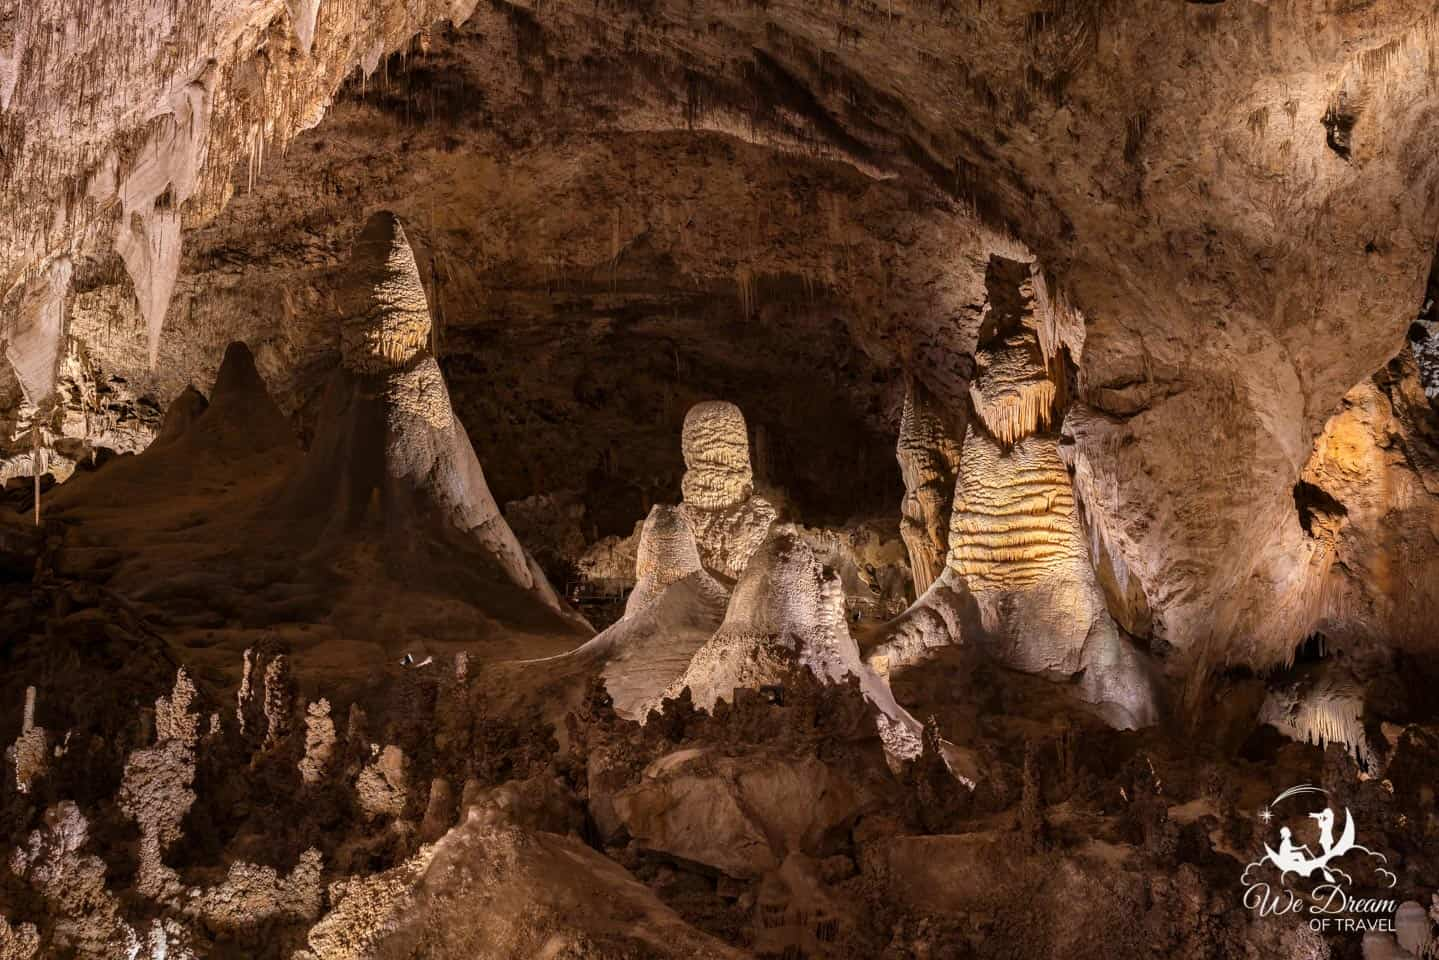 Stalagmites have a more rounded appearance and grow up from the ground in Carlsbad Caverns.